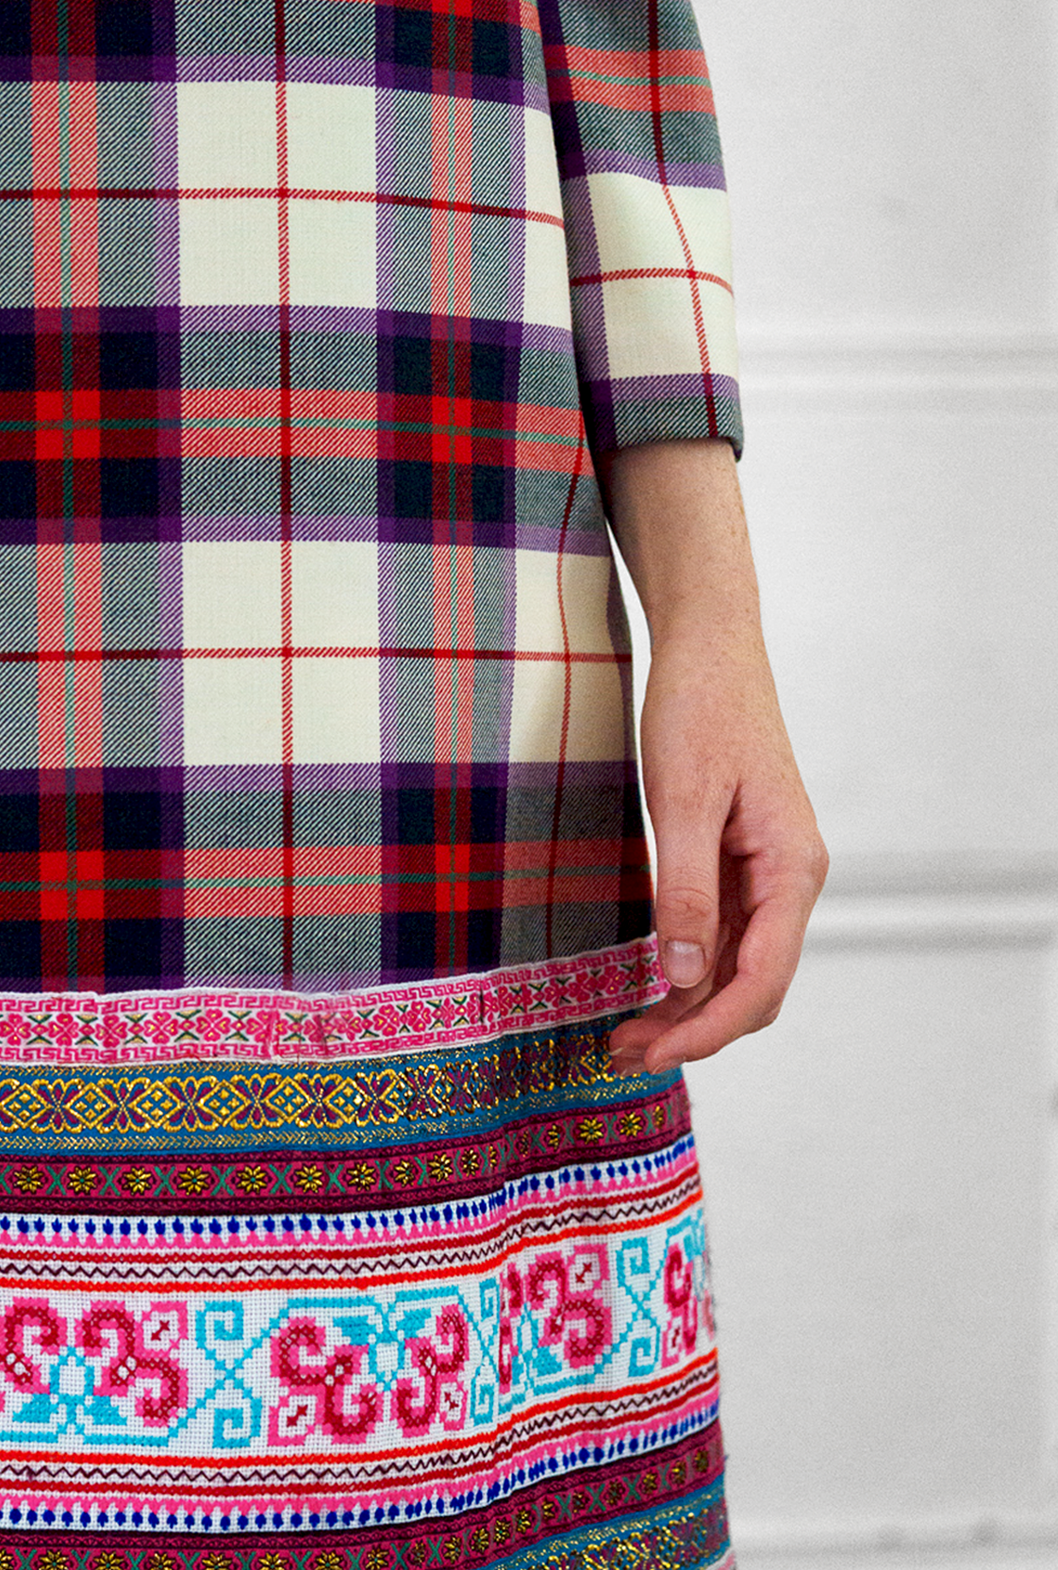 10 S Plaid Hmong Shift Dress Detail.png